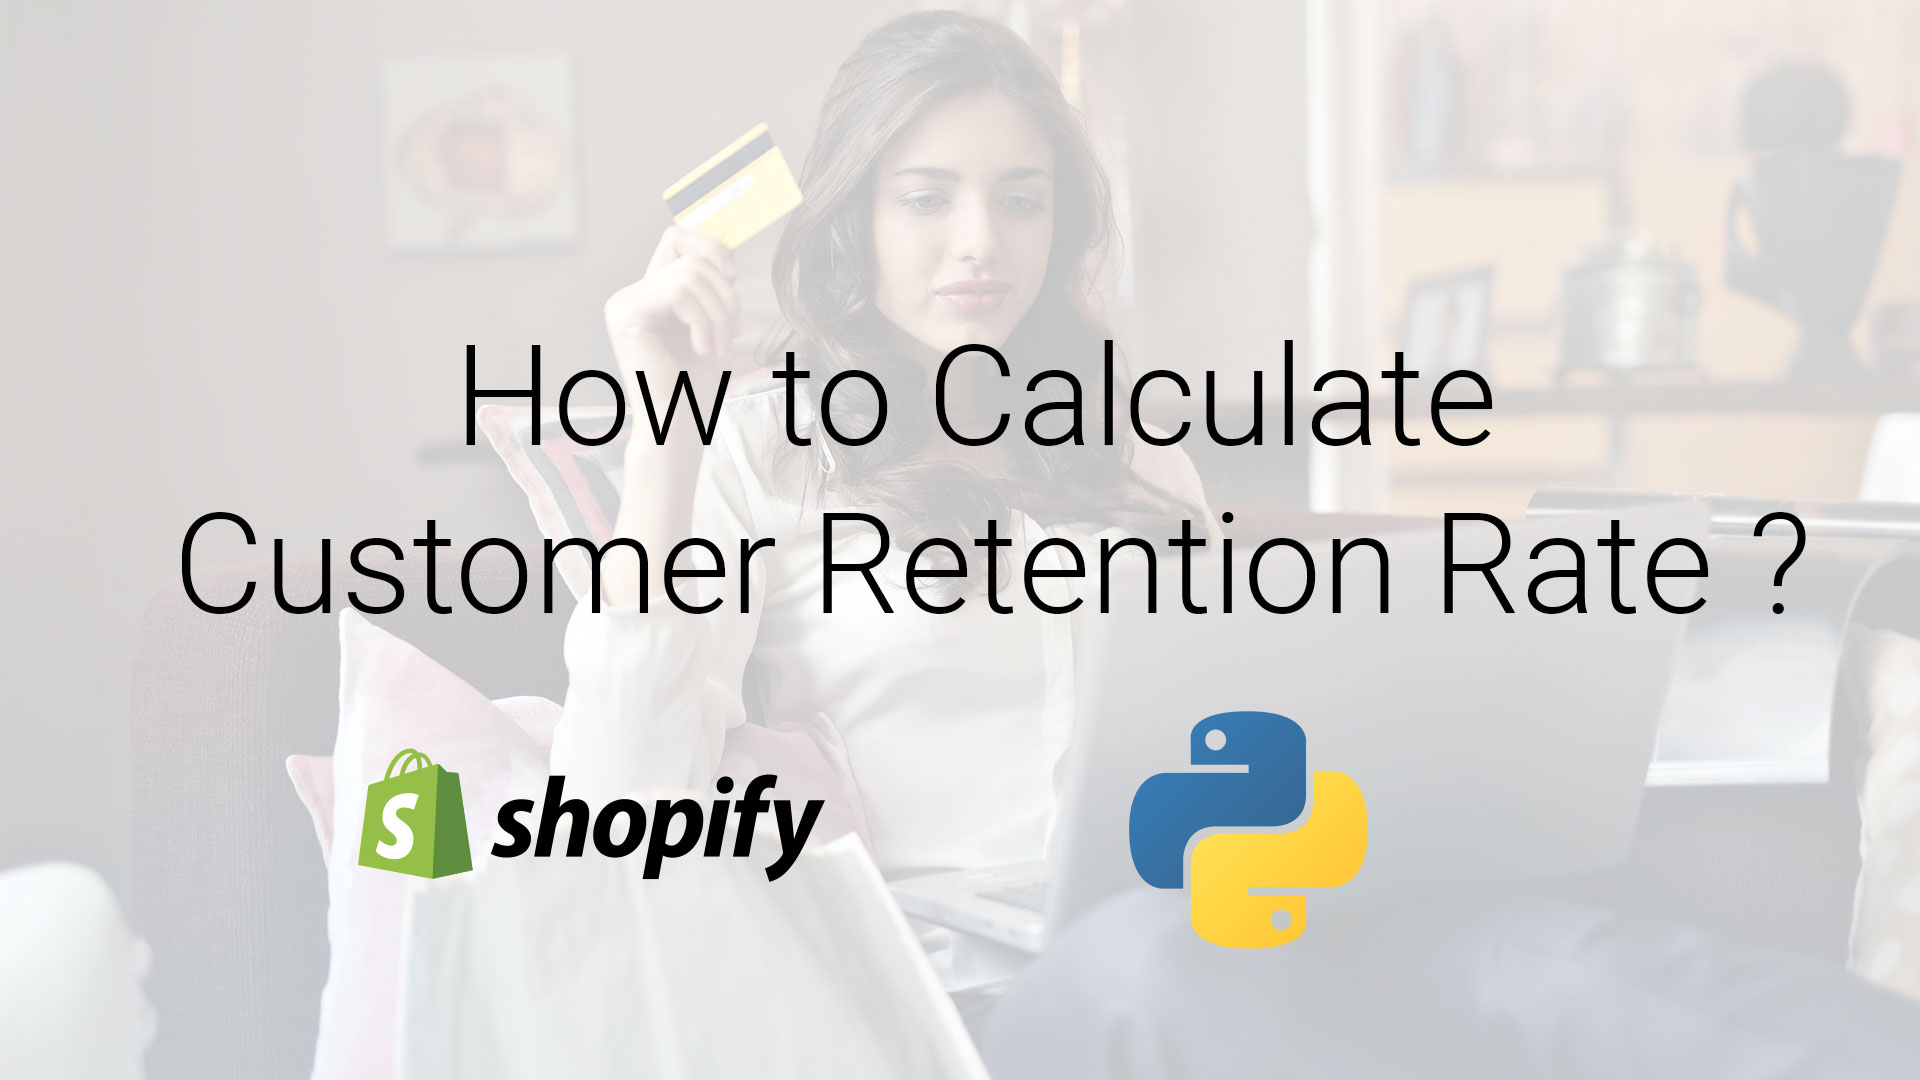 Calculate the Customer Retention Rate